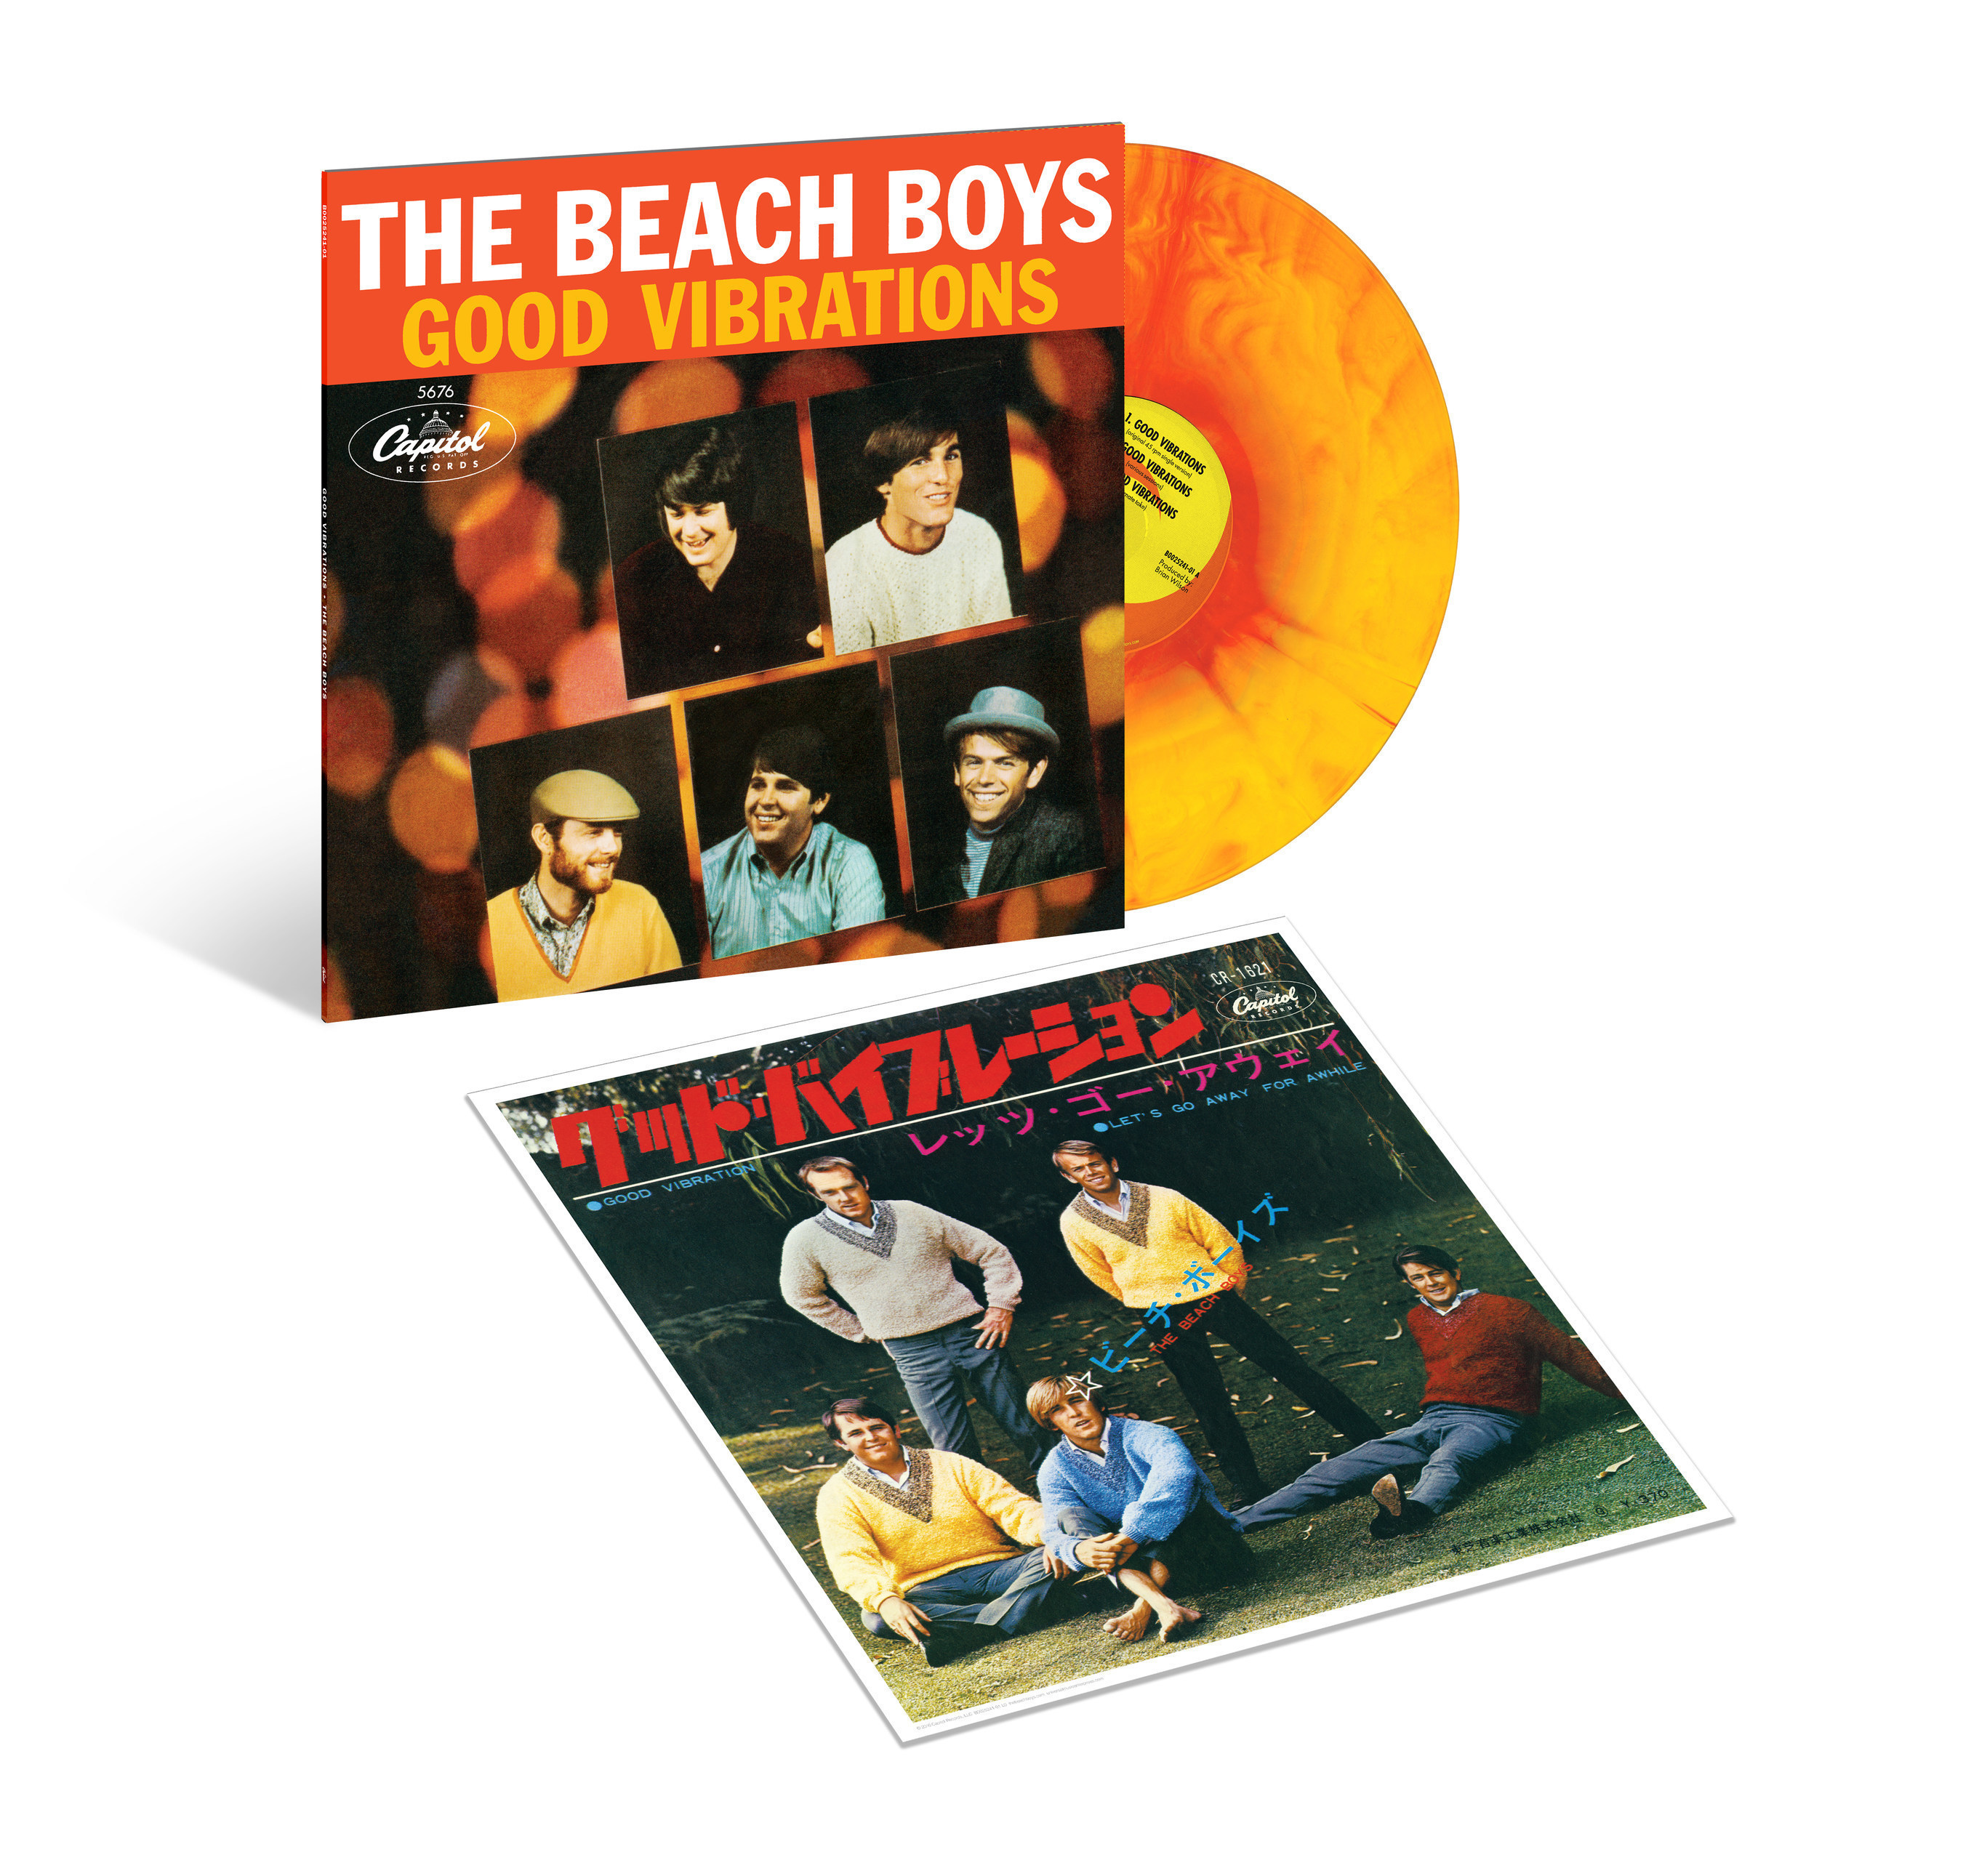 The Beach Boys Celebrate 50 Years Of 'Good Vibrations' With Commemorative Sunburst Vinyl EP